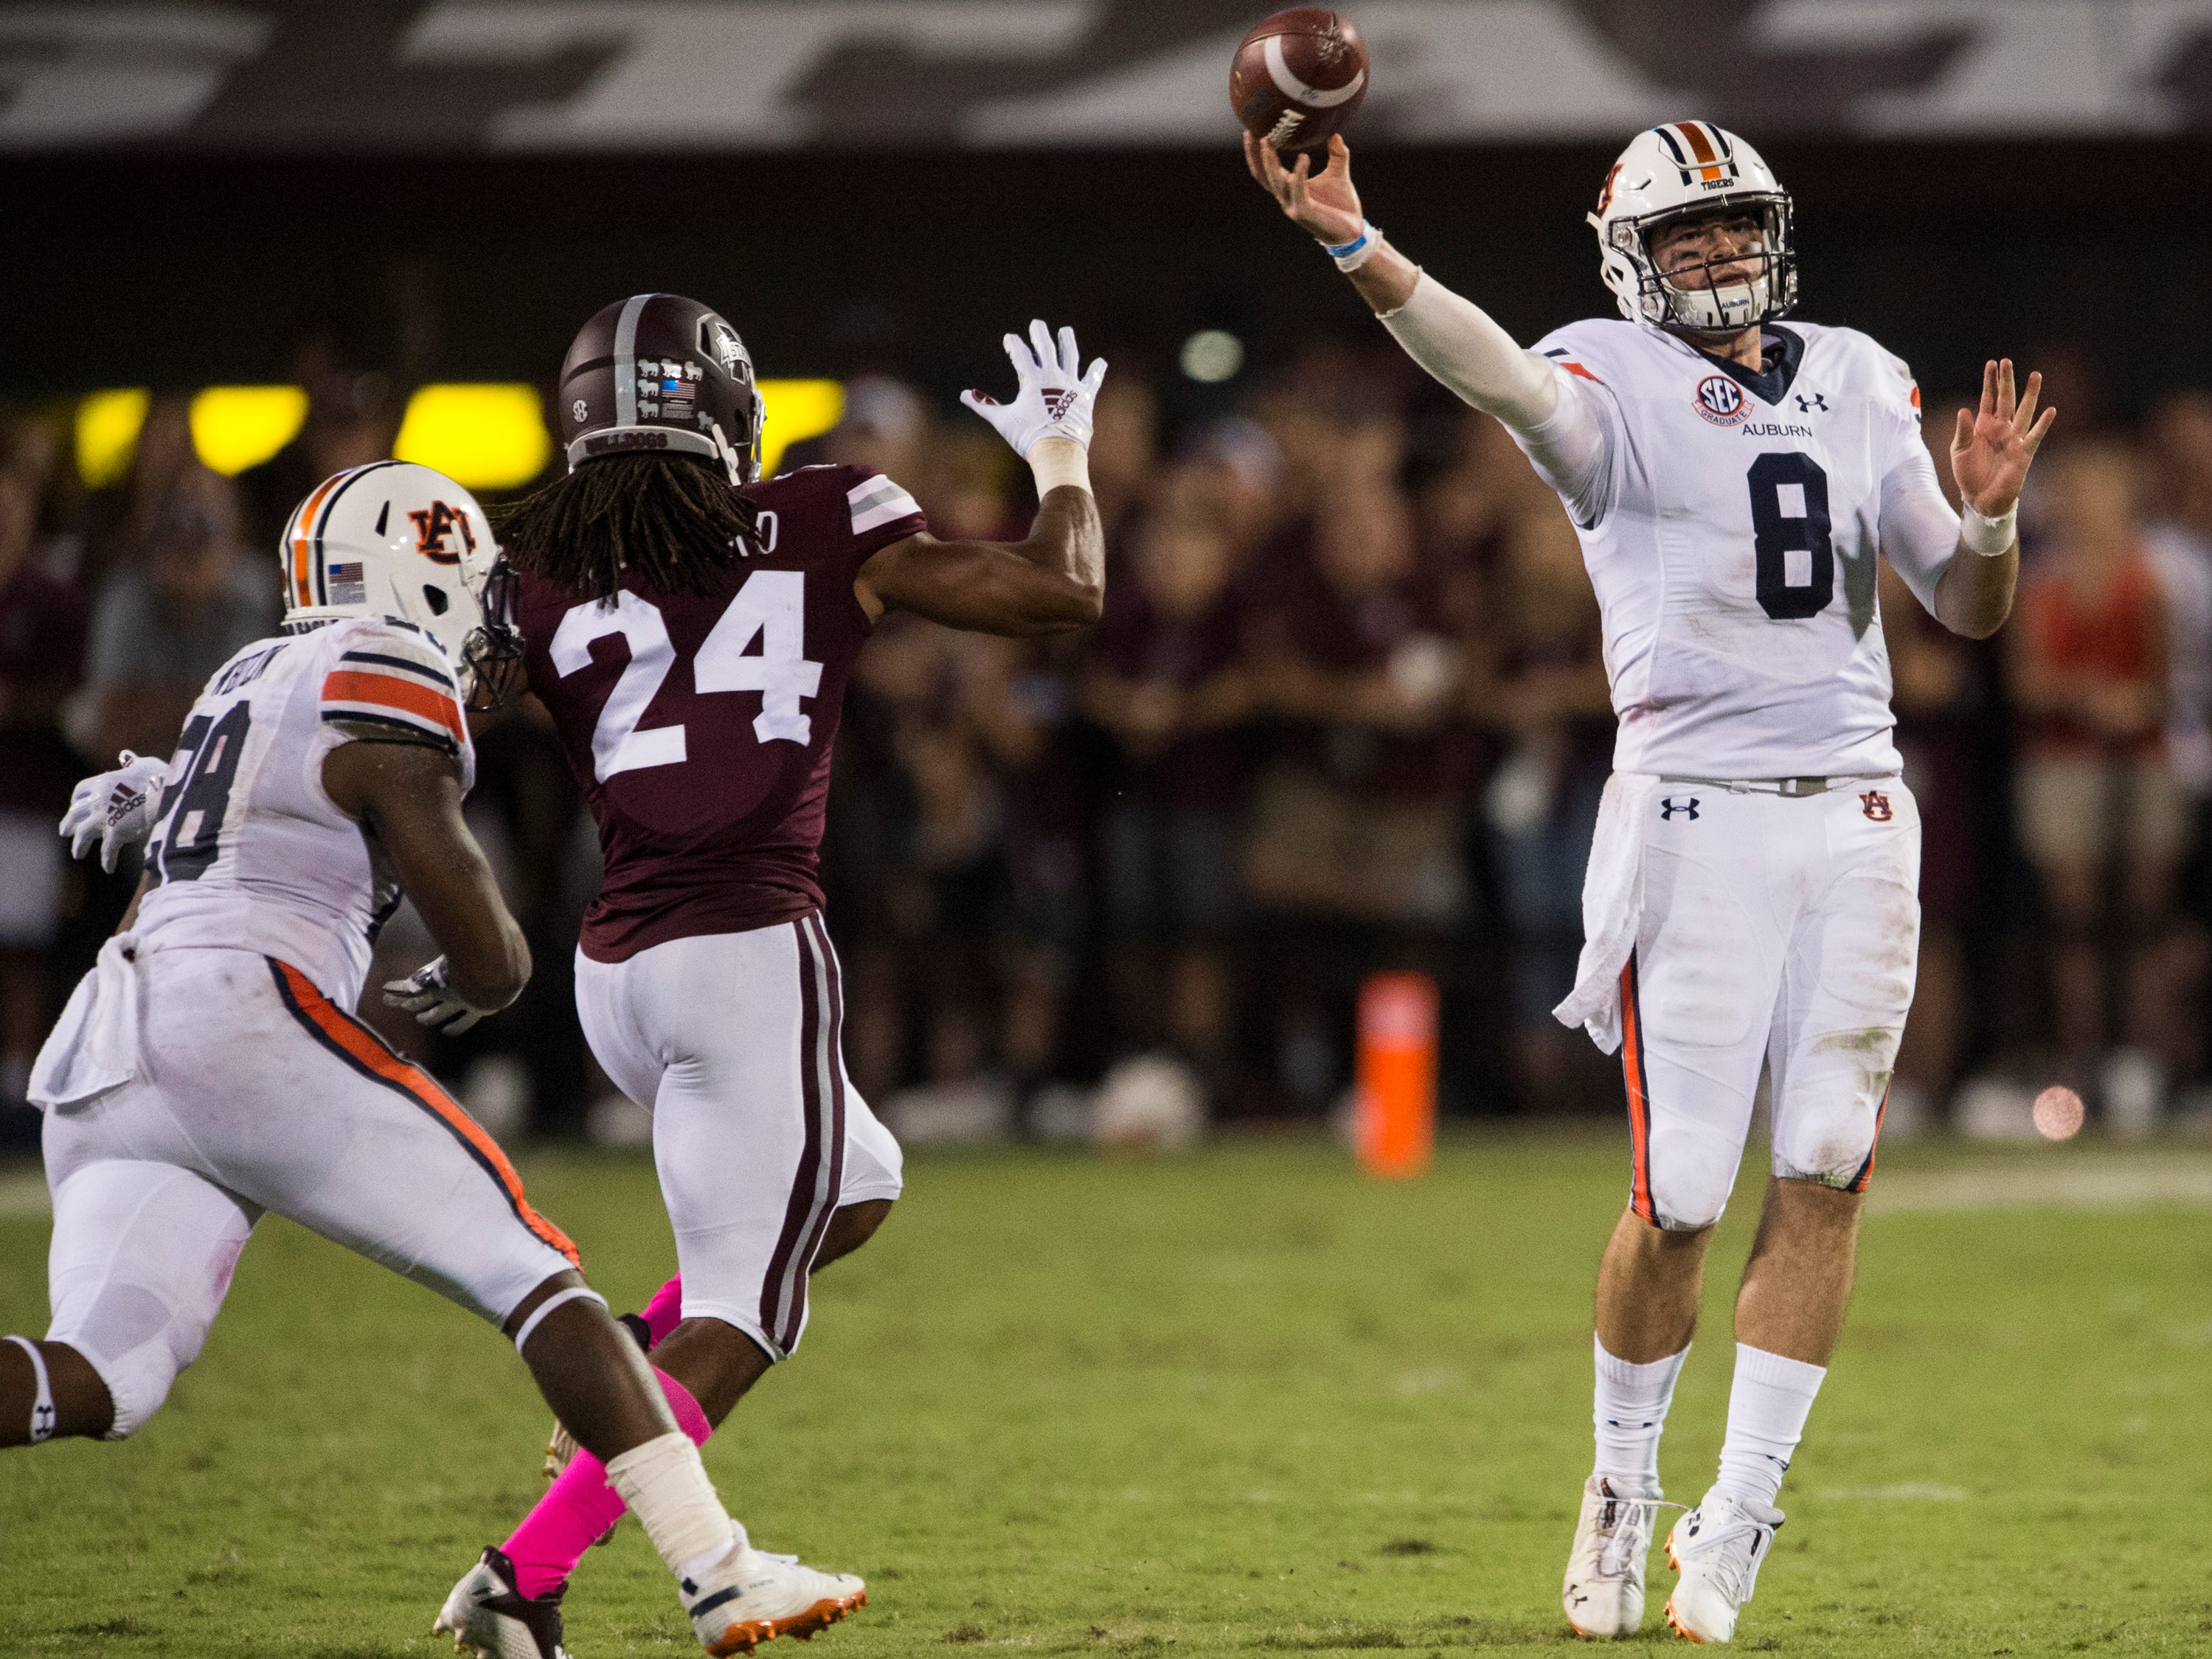 Auburn's Jarrett Stidham (8) throws the ball down field against Mississippi State at Davis Wade Stadium in Starkville, Miss., on Saturday, Oct. 6, 2018. Mississippi State defeated Auburn 23-9.